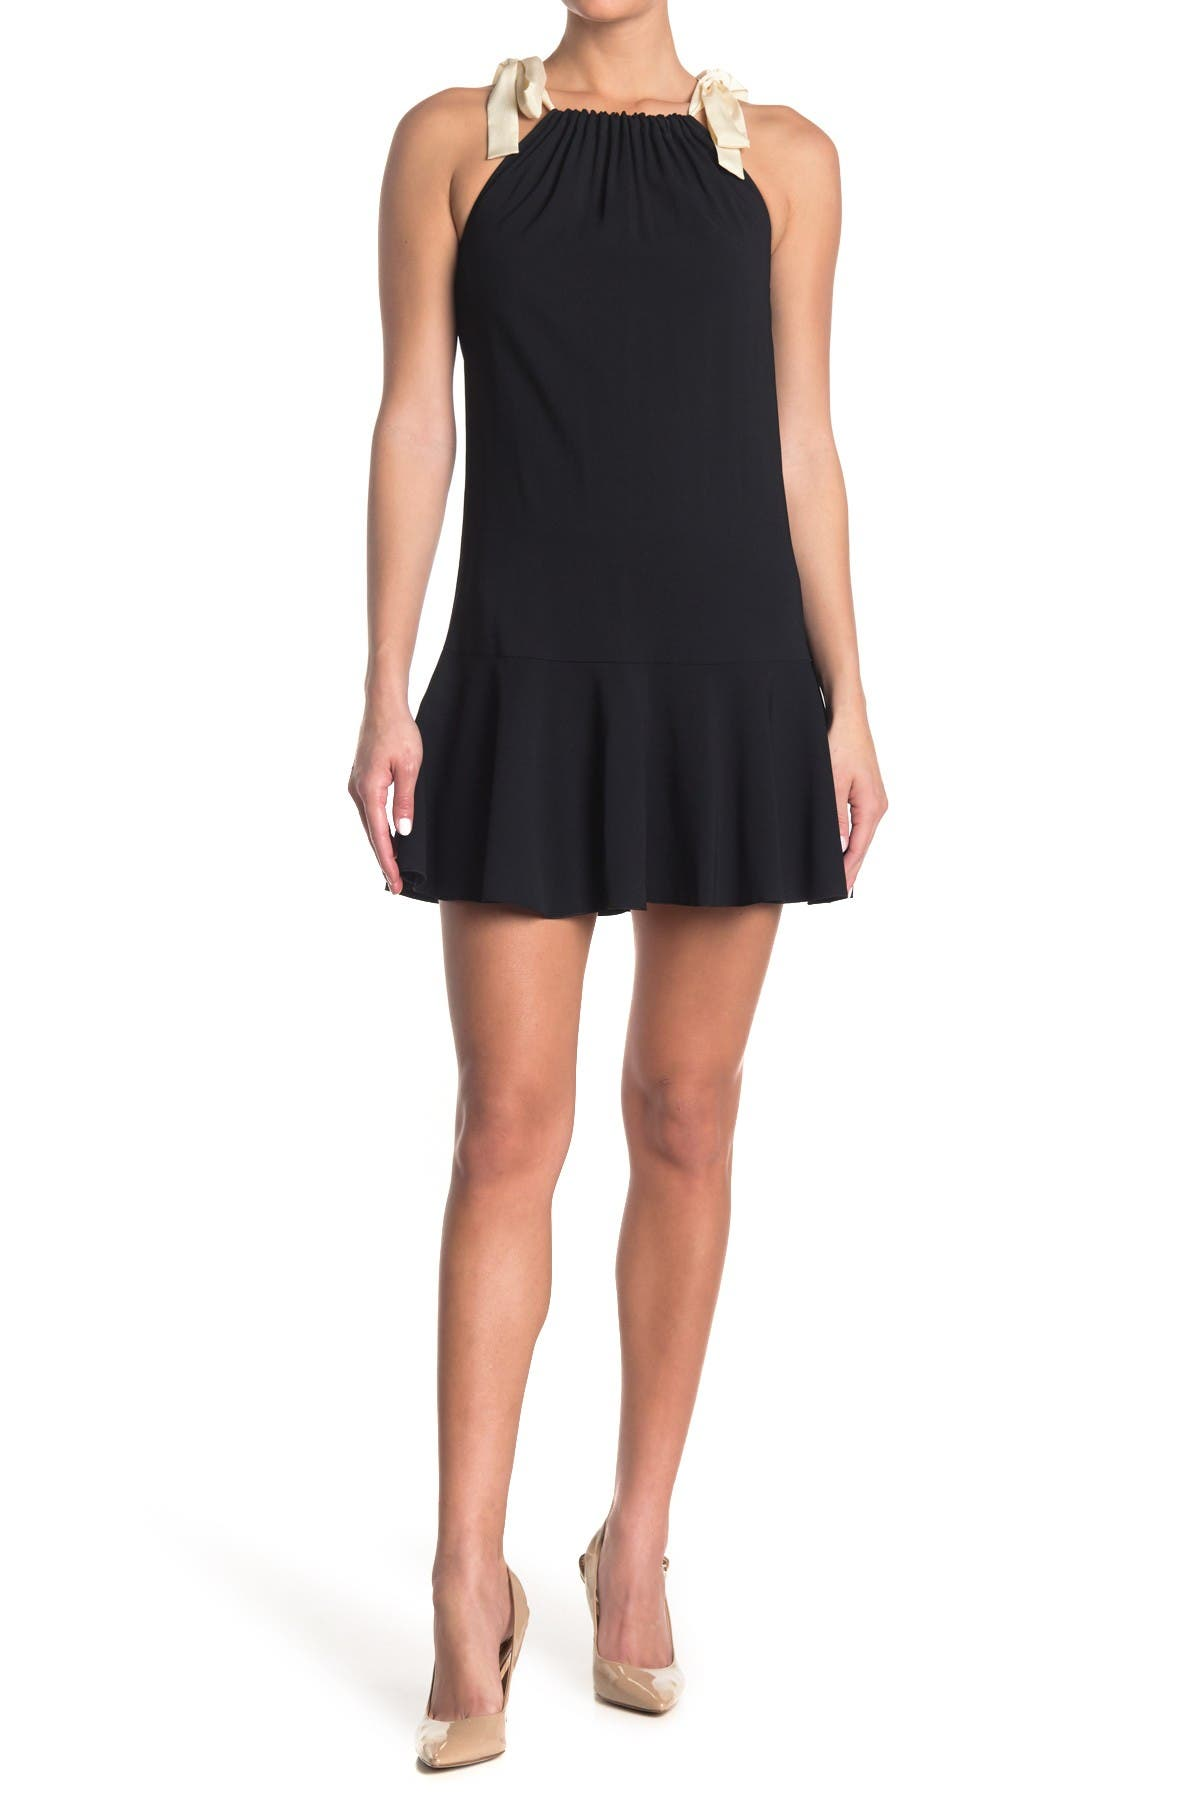 Image of RED Valentino Tie Strap Ruffle Dress